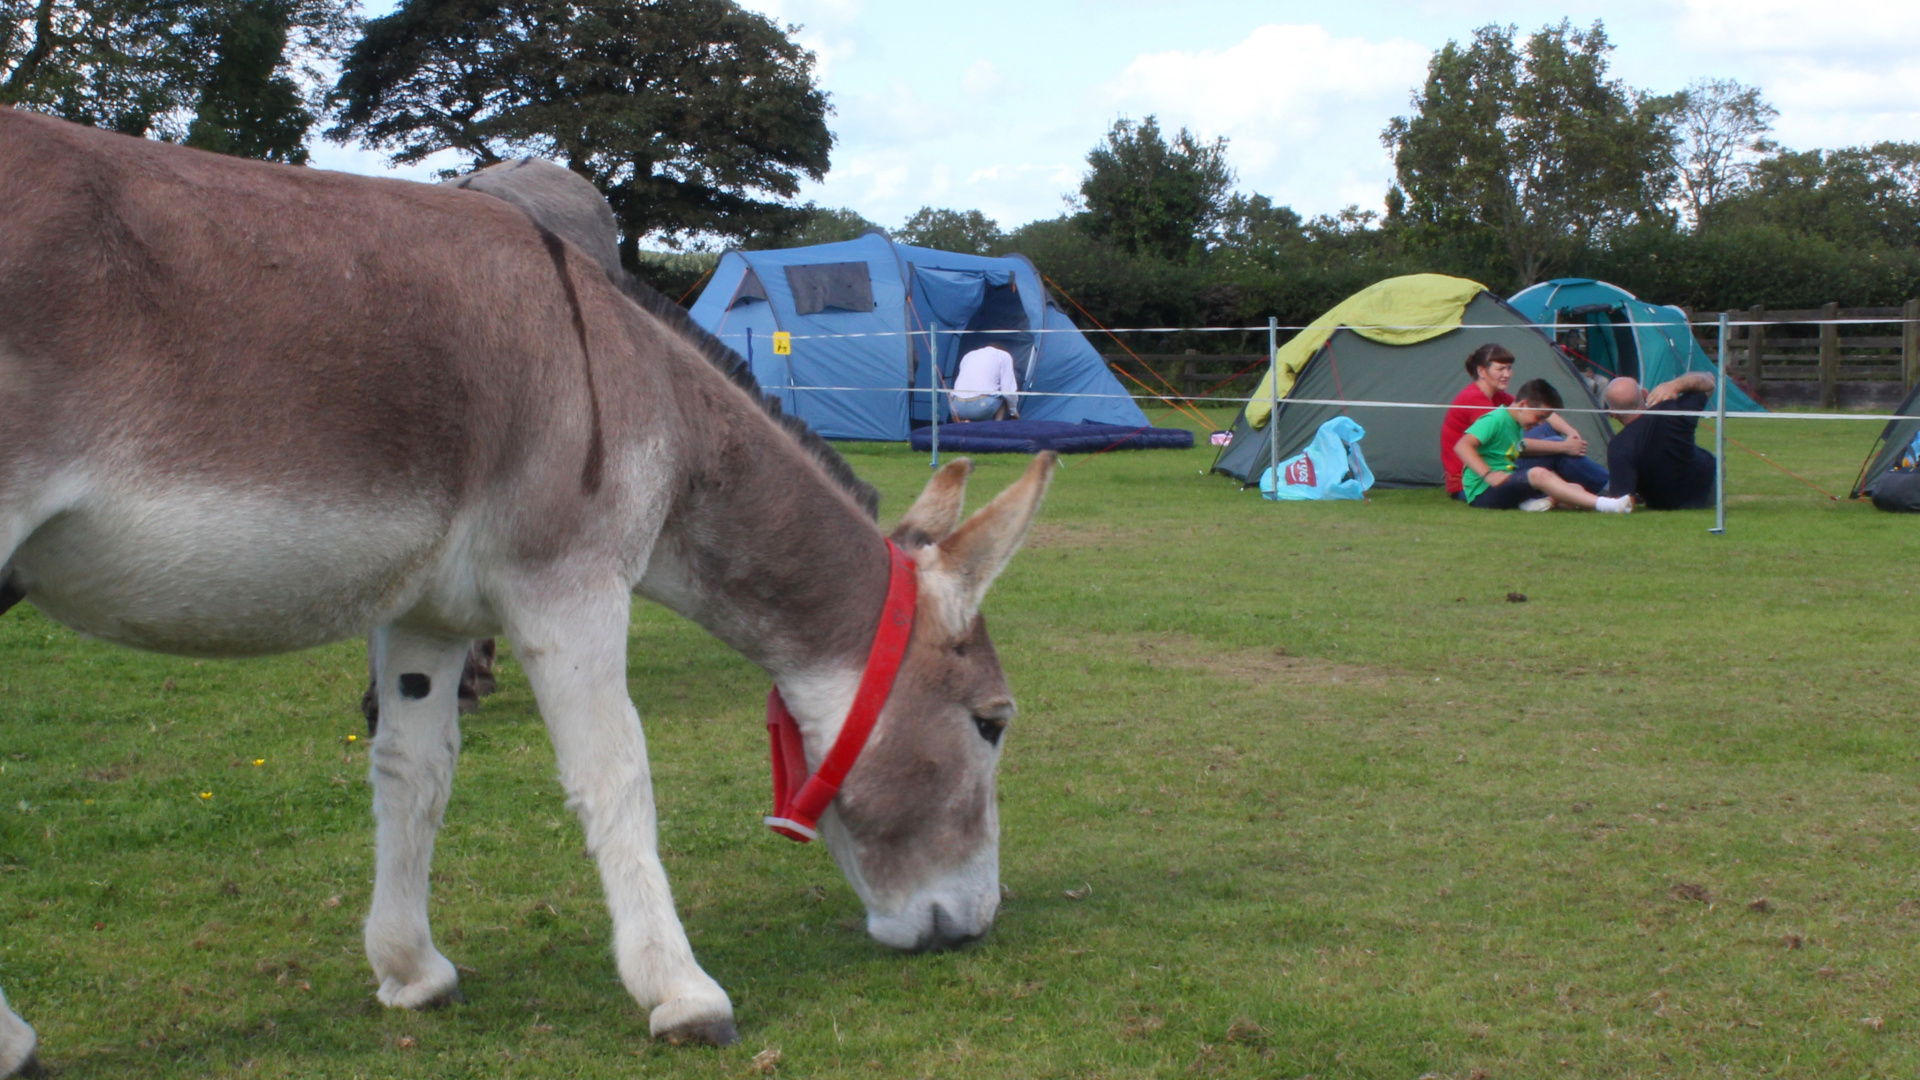 bray-and-stay-campers-and-donkey-grazing